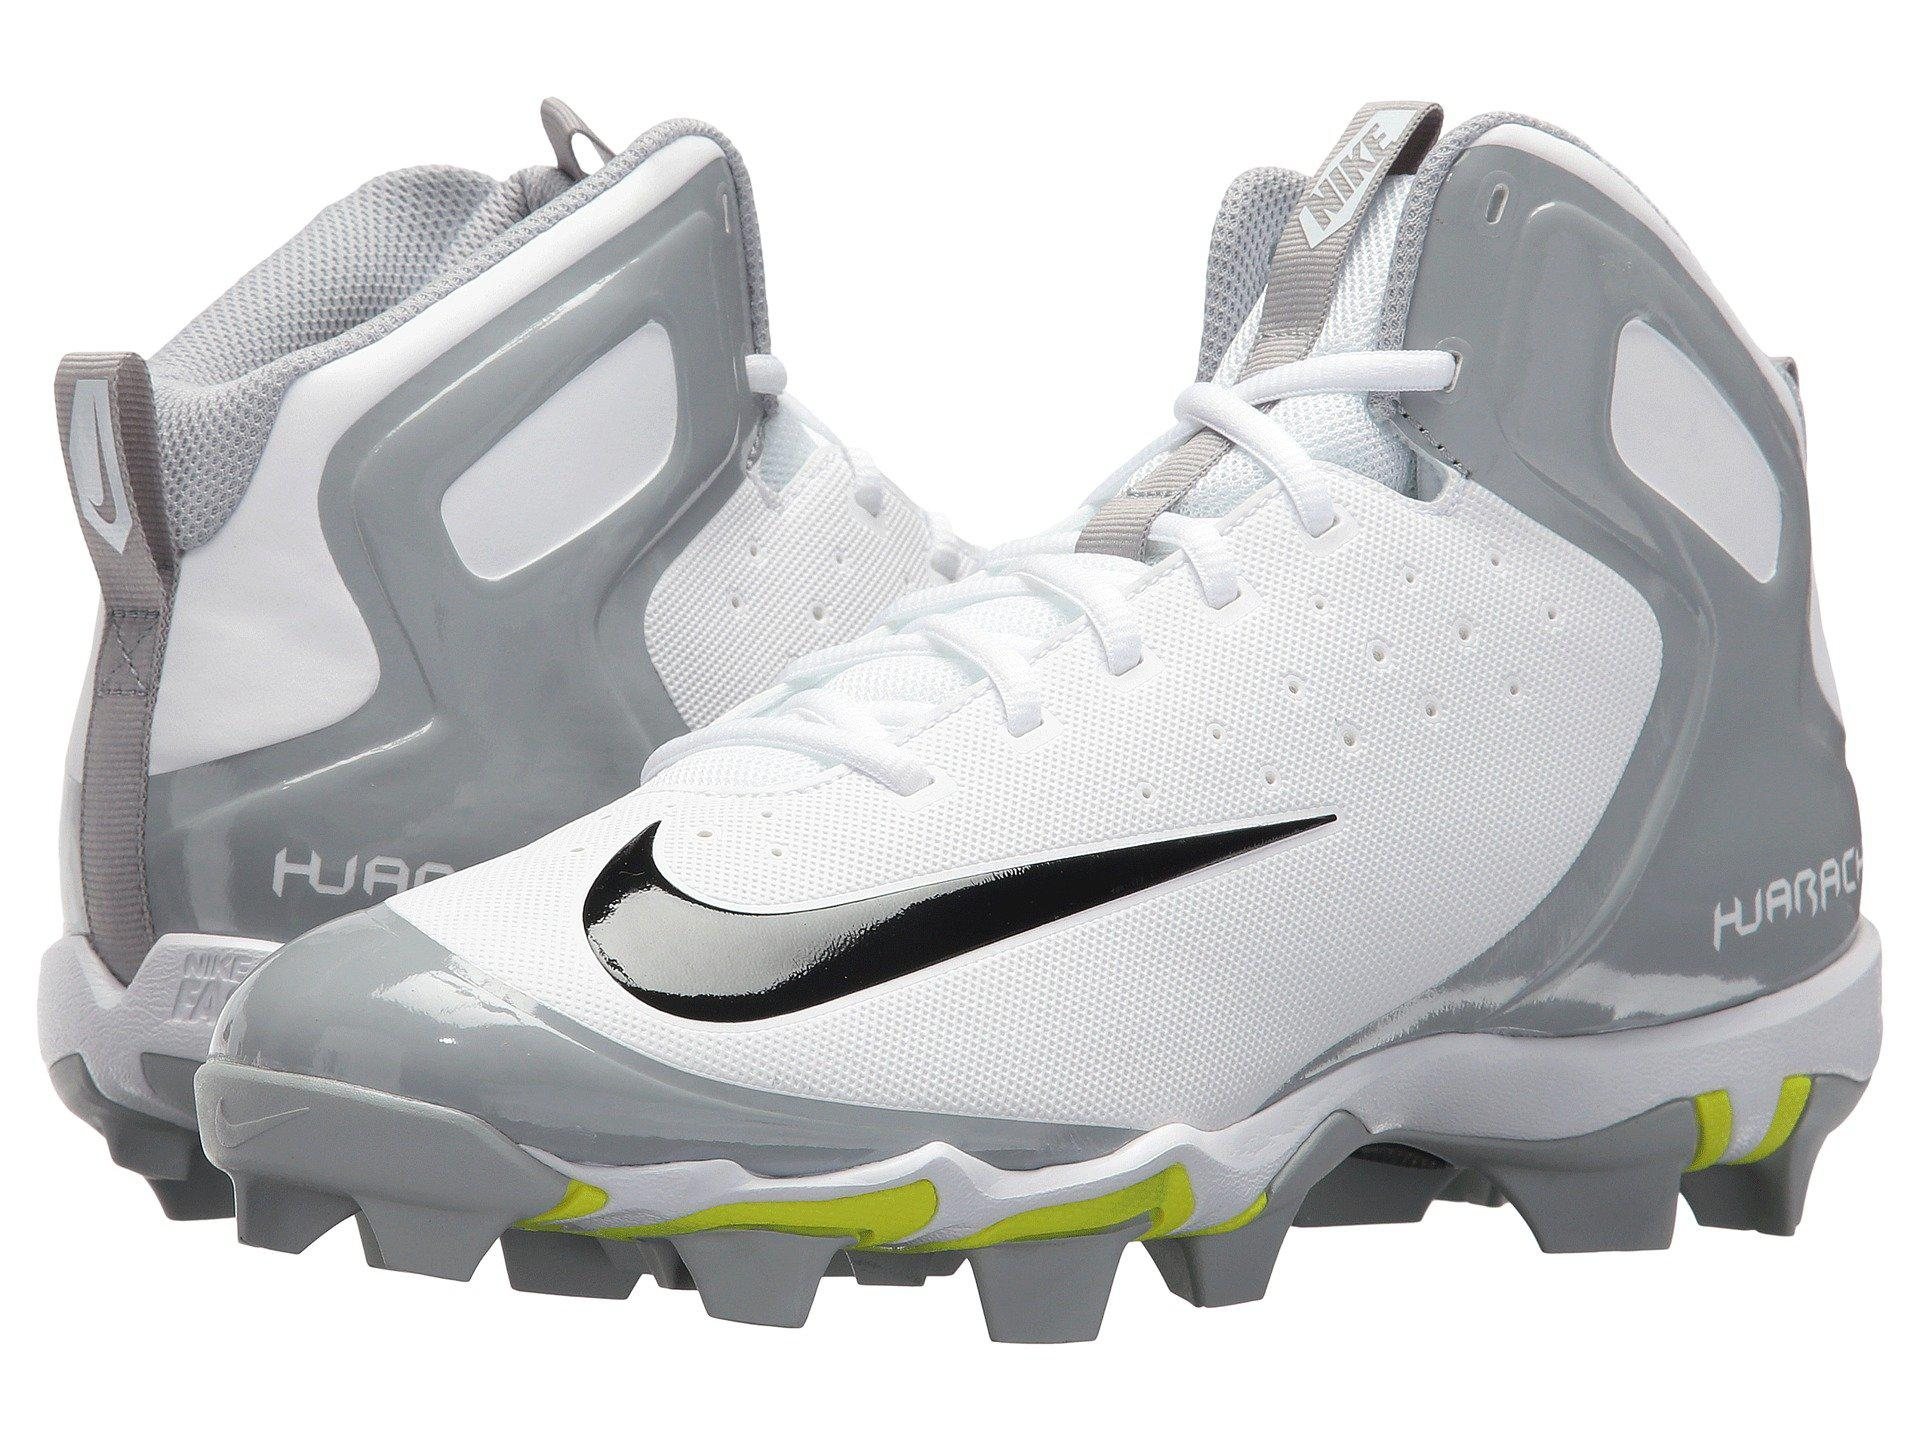 reputable site d6353 4c68a Lyst - Nike Alpha Huarache Keystone Mid in White for Men